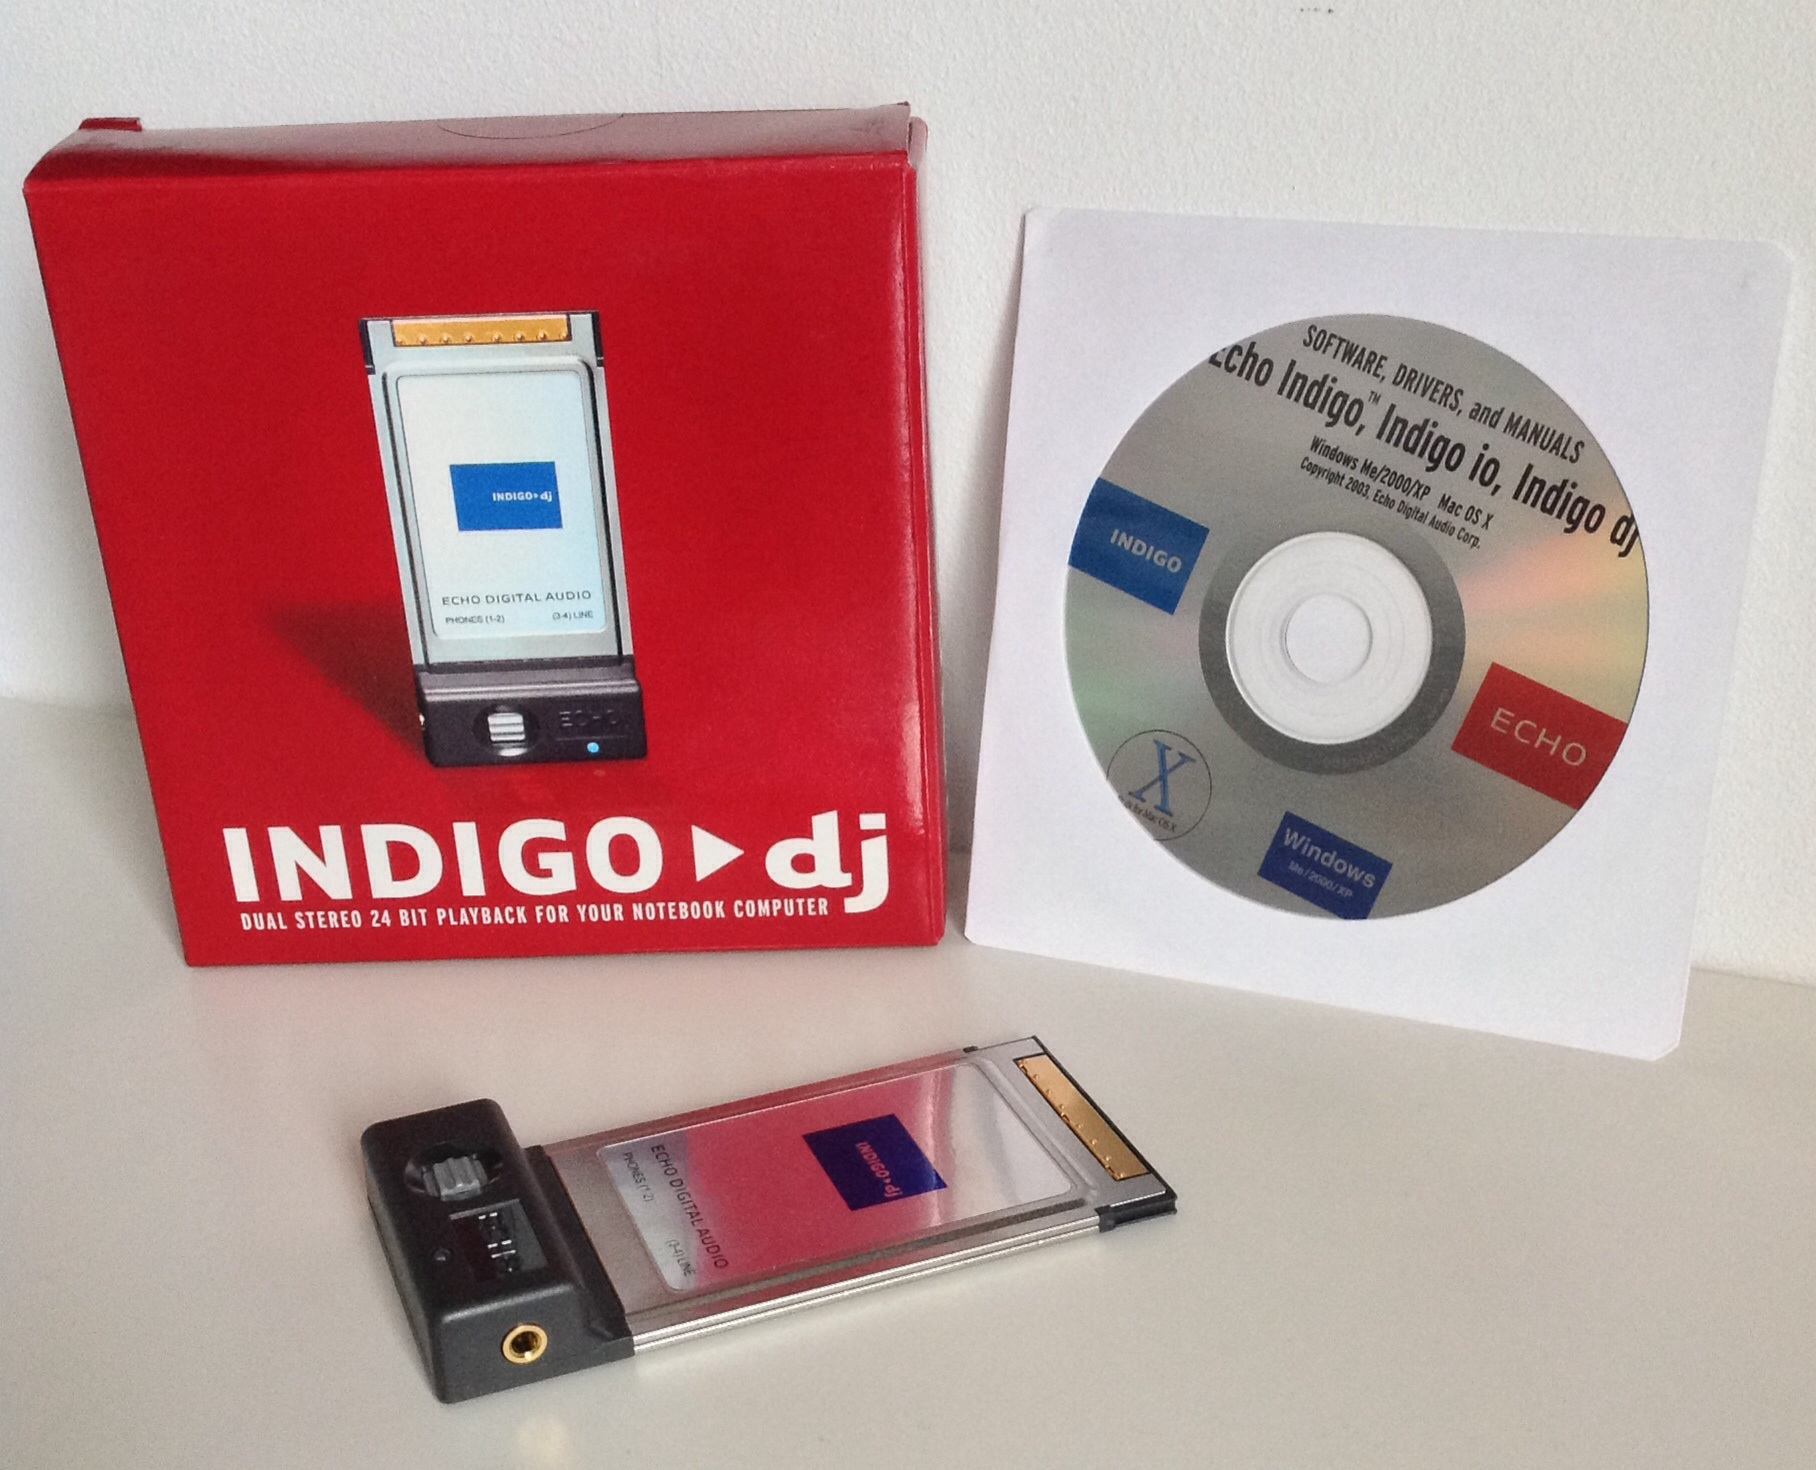 ECHO DIGITAL AUDIO CORPORATION INDIGO DJ DRIVERS FOR WINDOWS